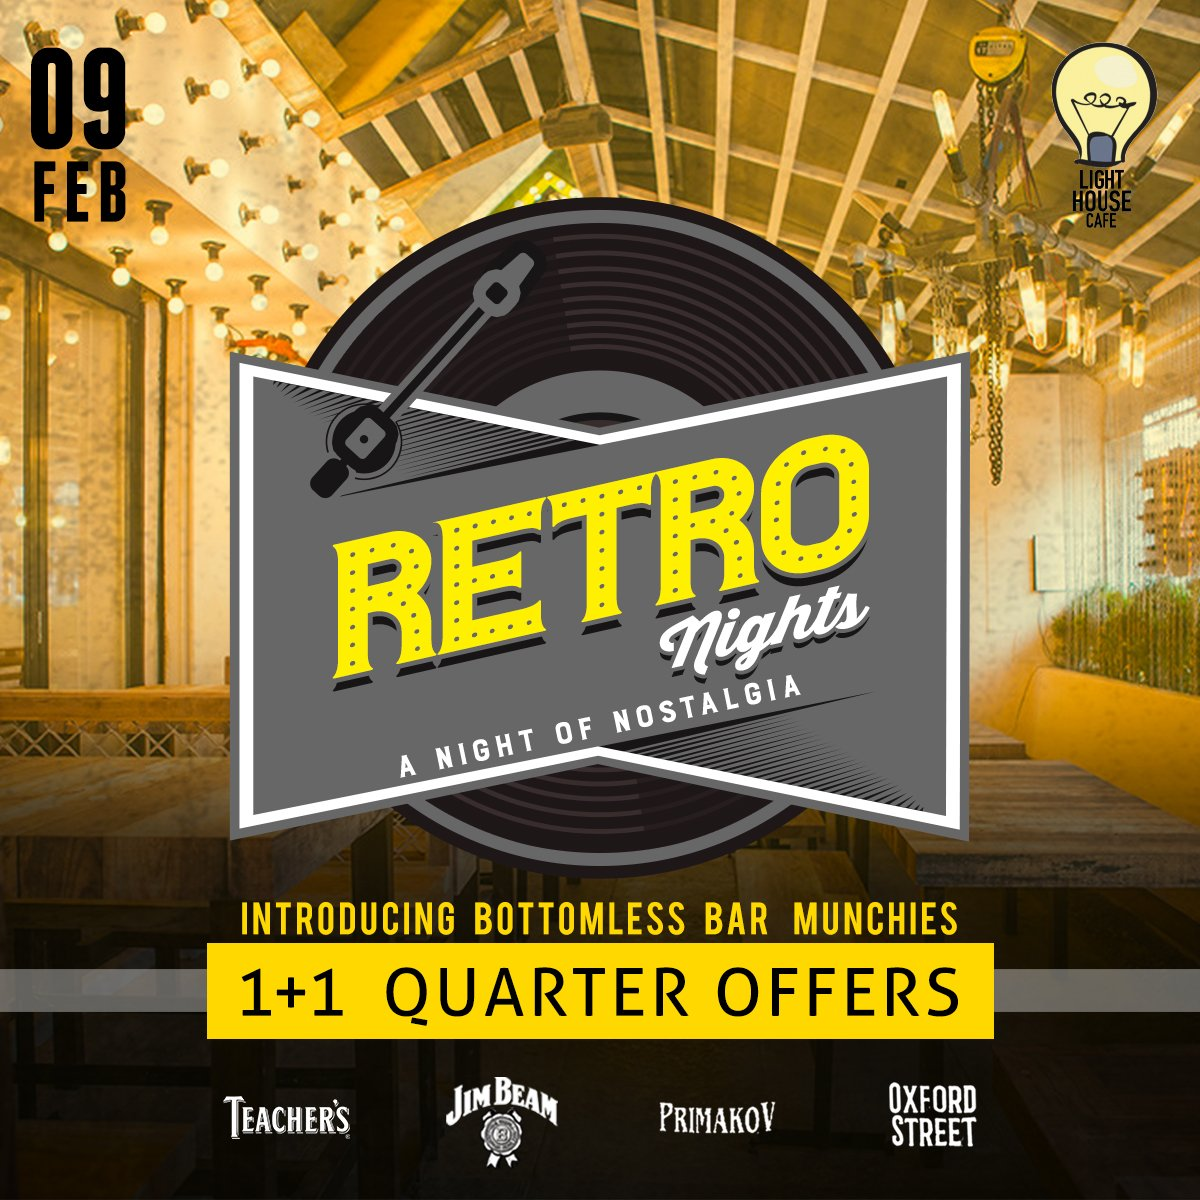 Go back in time to revisit the era of brilliance with our Retro Night along with amazing offers only at Light House Cafe Mumbai  #LHC #Worli #Mumbai #Zomato #Blogpost #bloggers #Weekday #CurlyTales #Weekends #Thingstodo #Mumbaifoodie #Foodgasm #mumbaifood #indianblogger